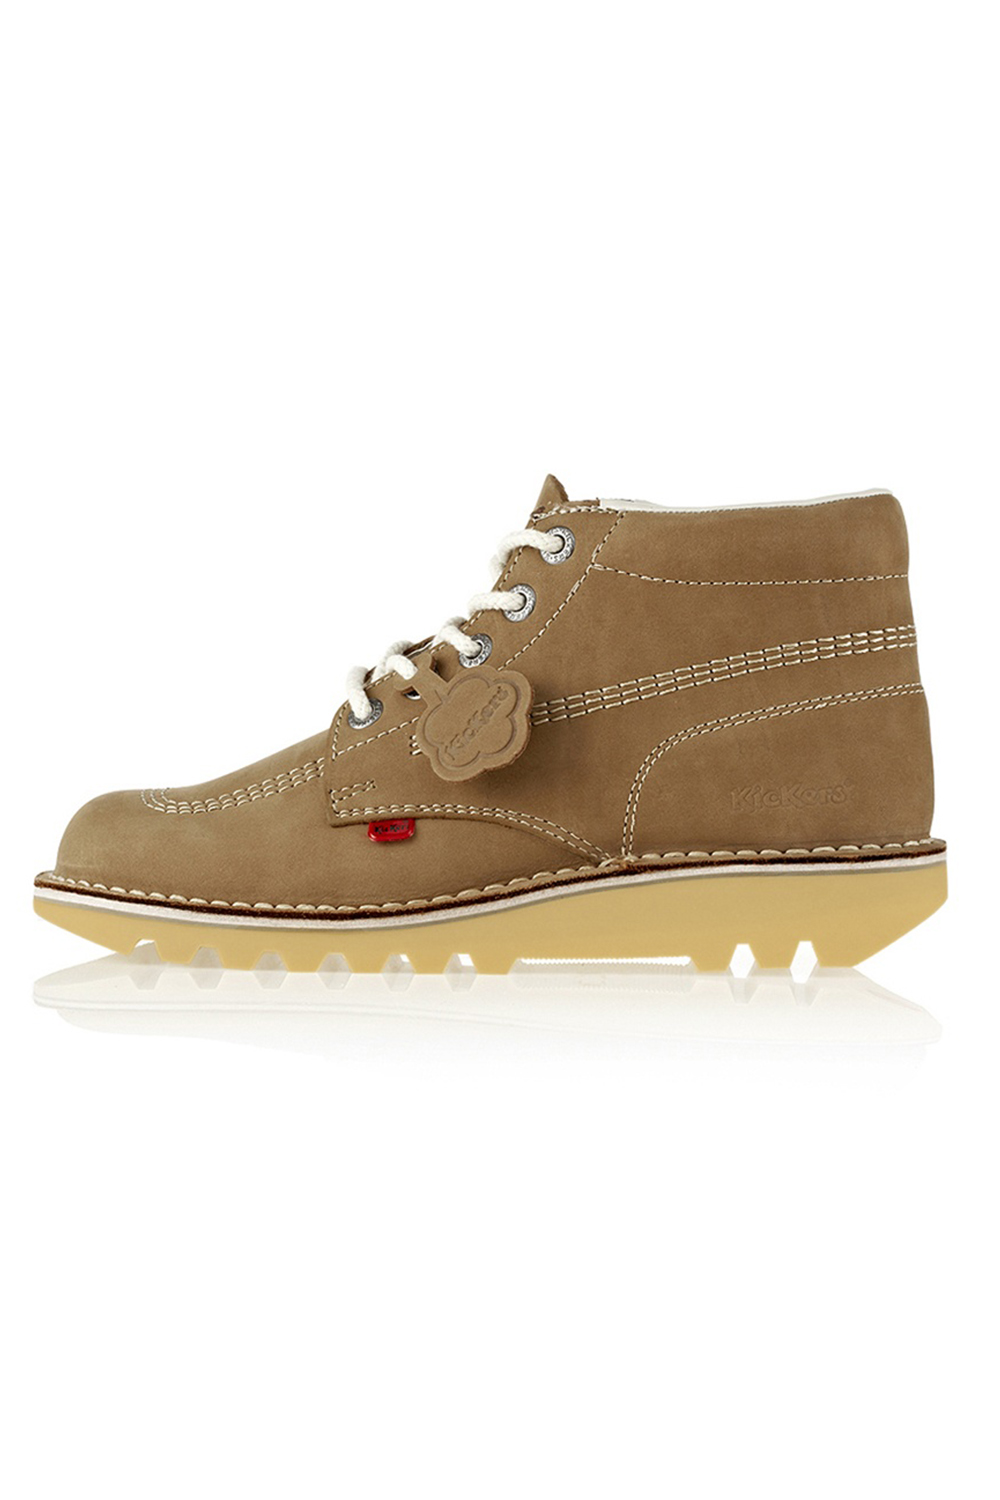 Kickers-Kick-Hi-M-Core-Homme-Bottines-a-Lacets-Decontractees-En-Cuir-Marron-Clair-Chaussures miniature 3